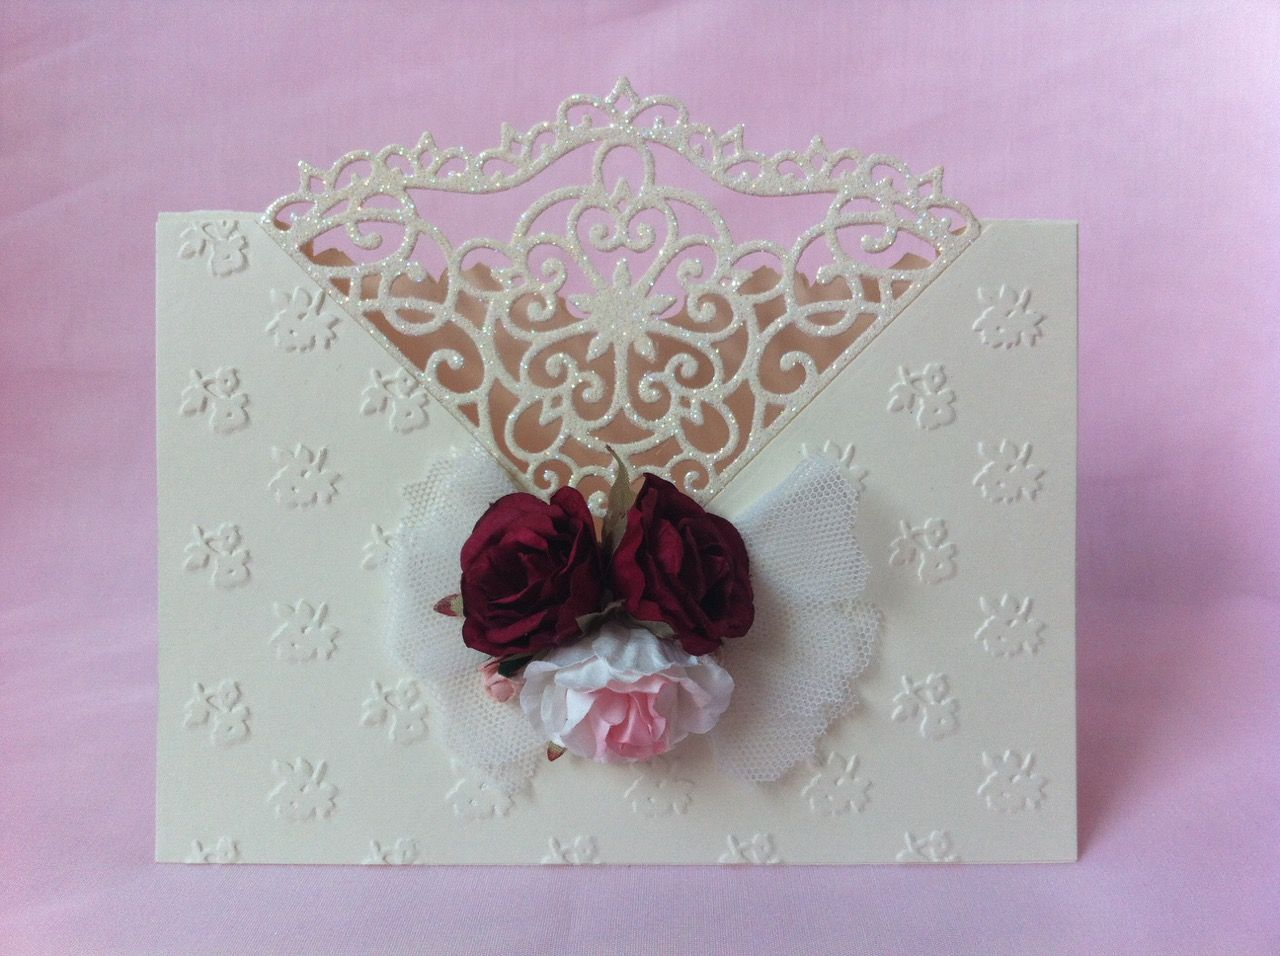 special wedding card inspir. from Christina Griffits many thanks